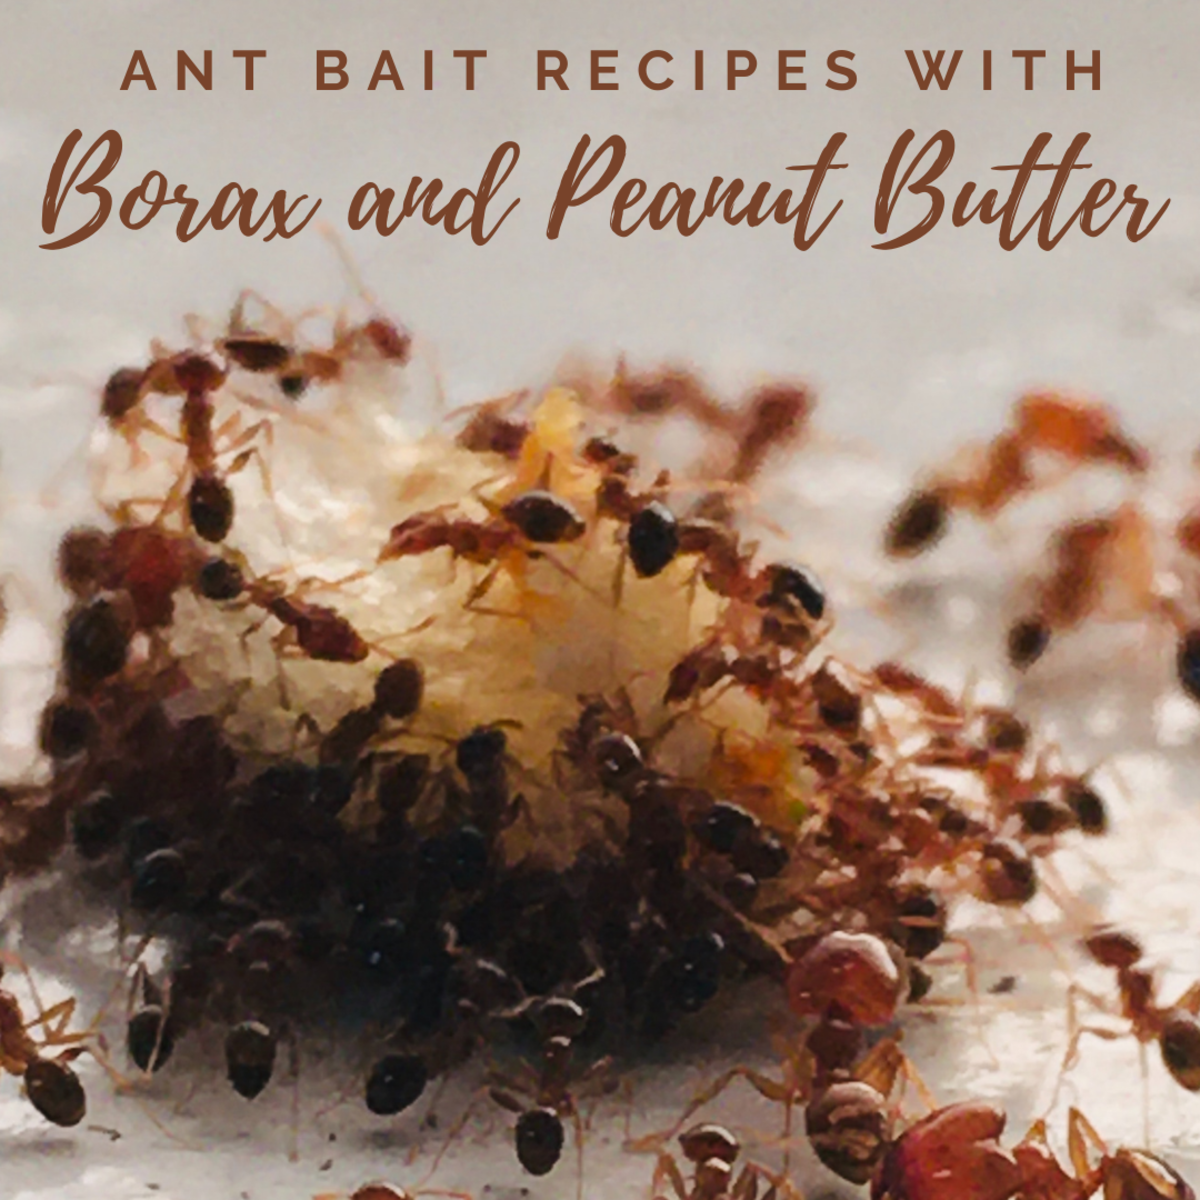 DIY Ant Bait Recipes Using Peanut Butter and Borax